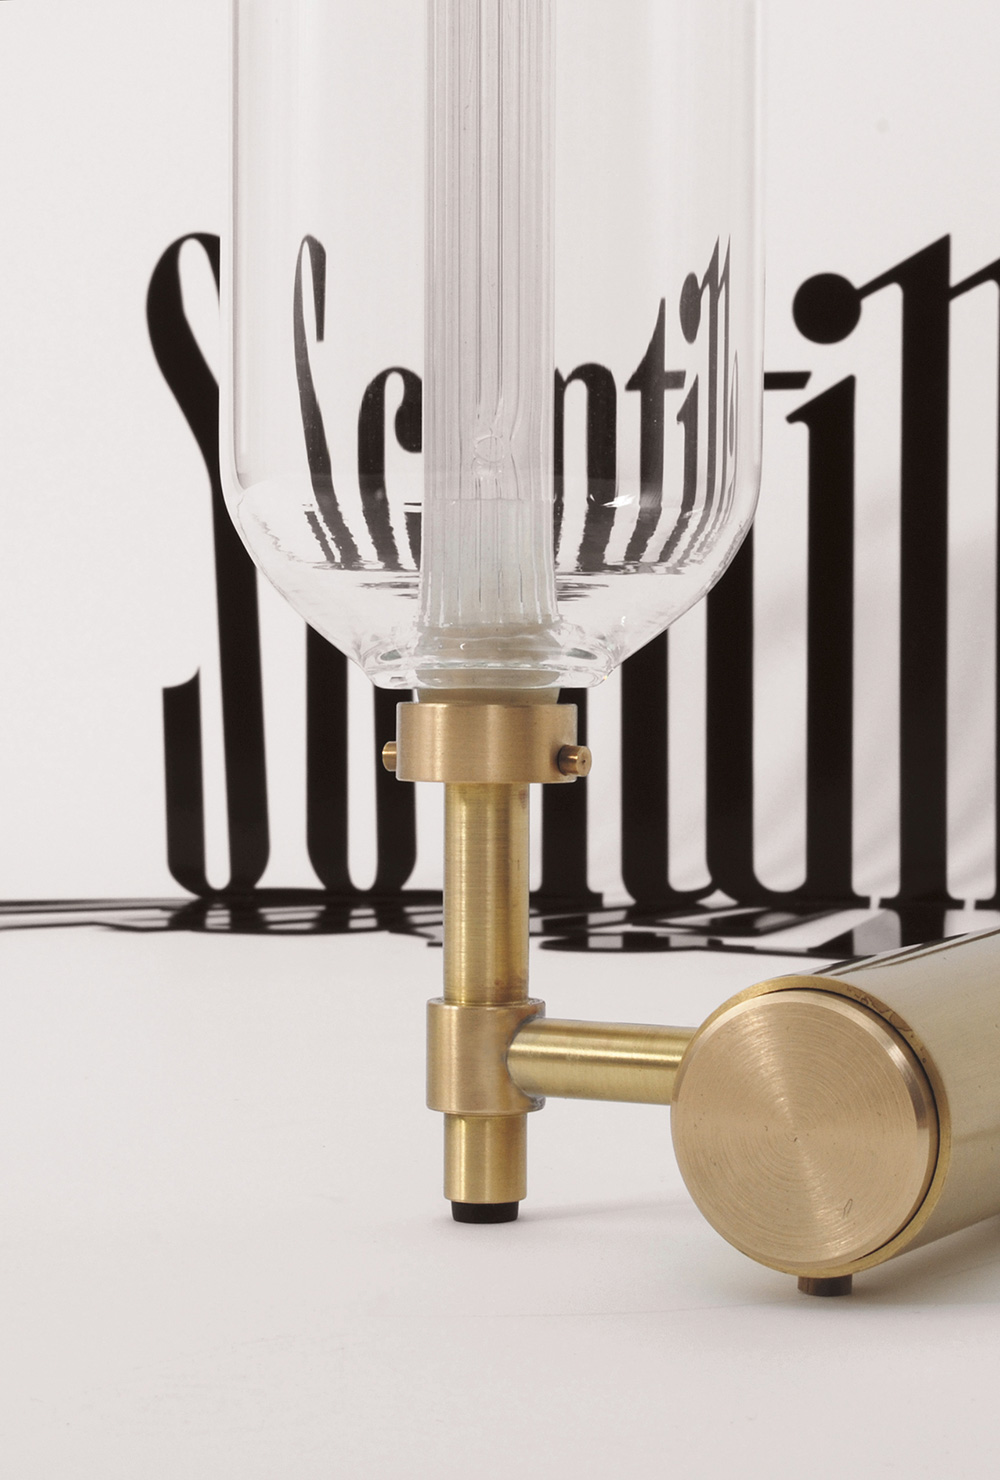 Scintilla Light by Pietro Russo for Dante | Yellowtrace.